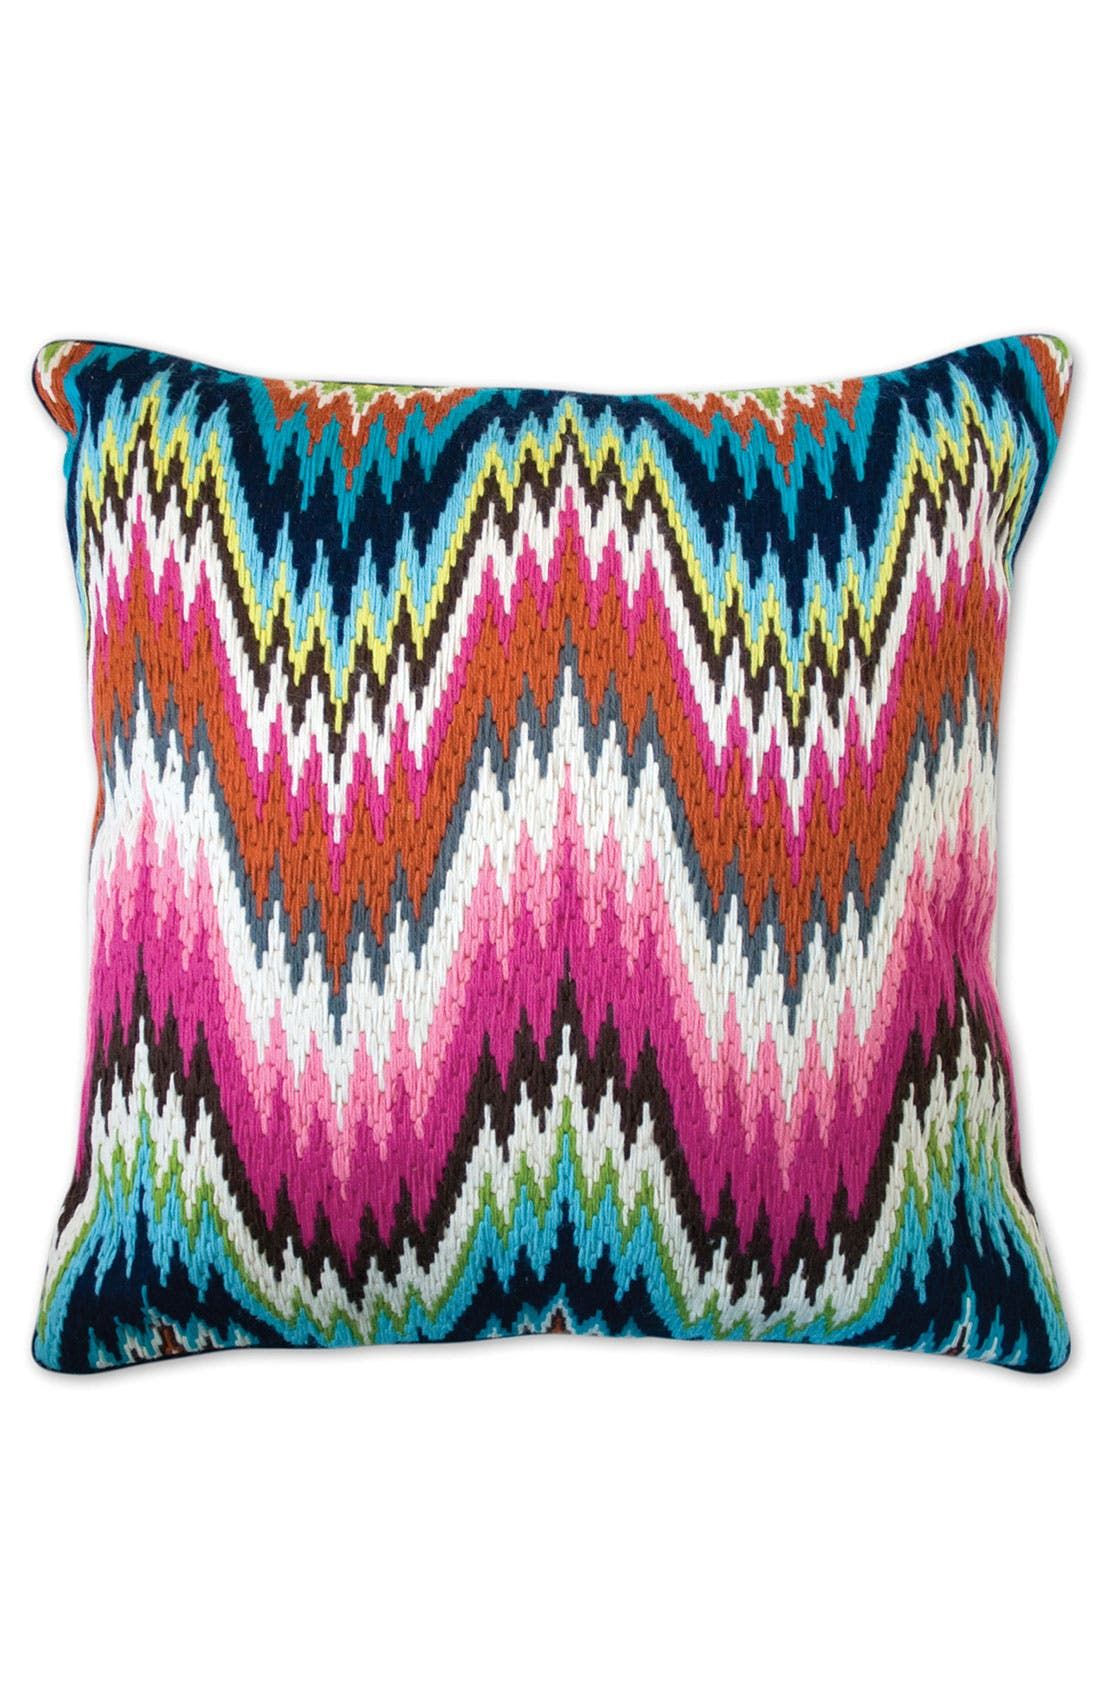 Main Image - Jonathan Adler 'Worth Avenue Bargello' Needlepoint Pillow